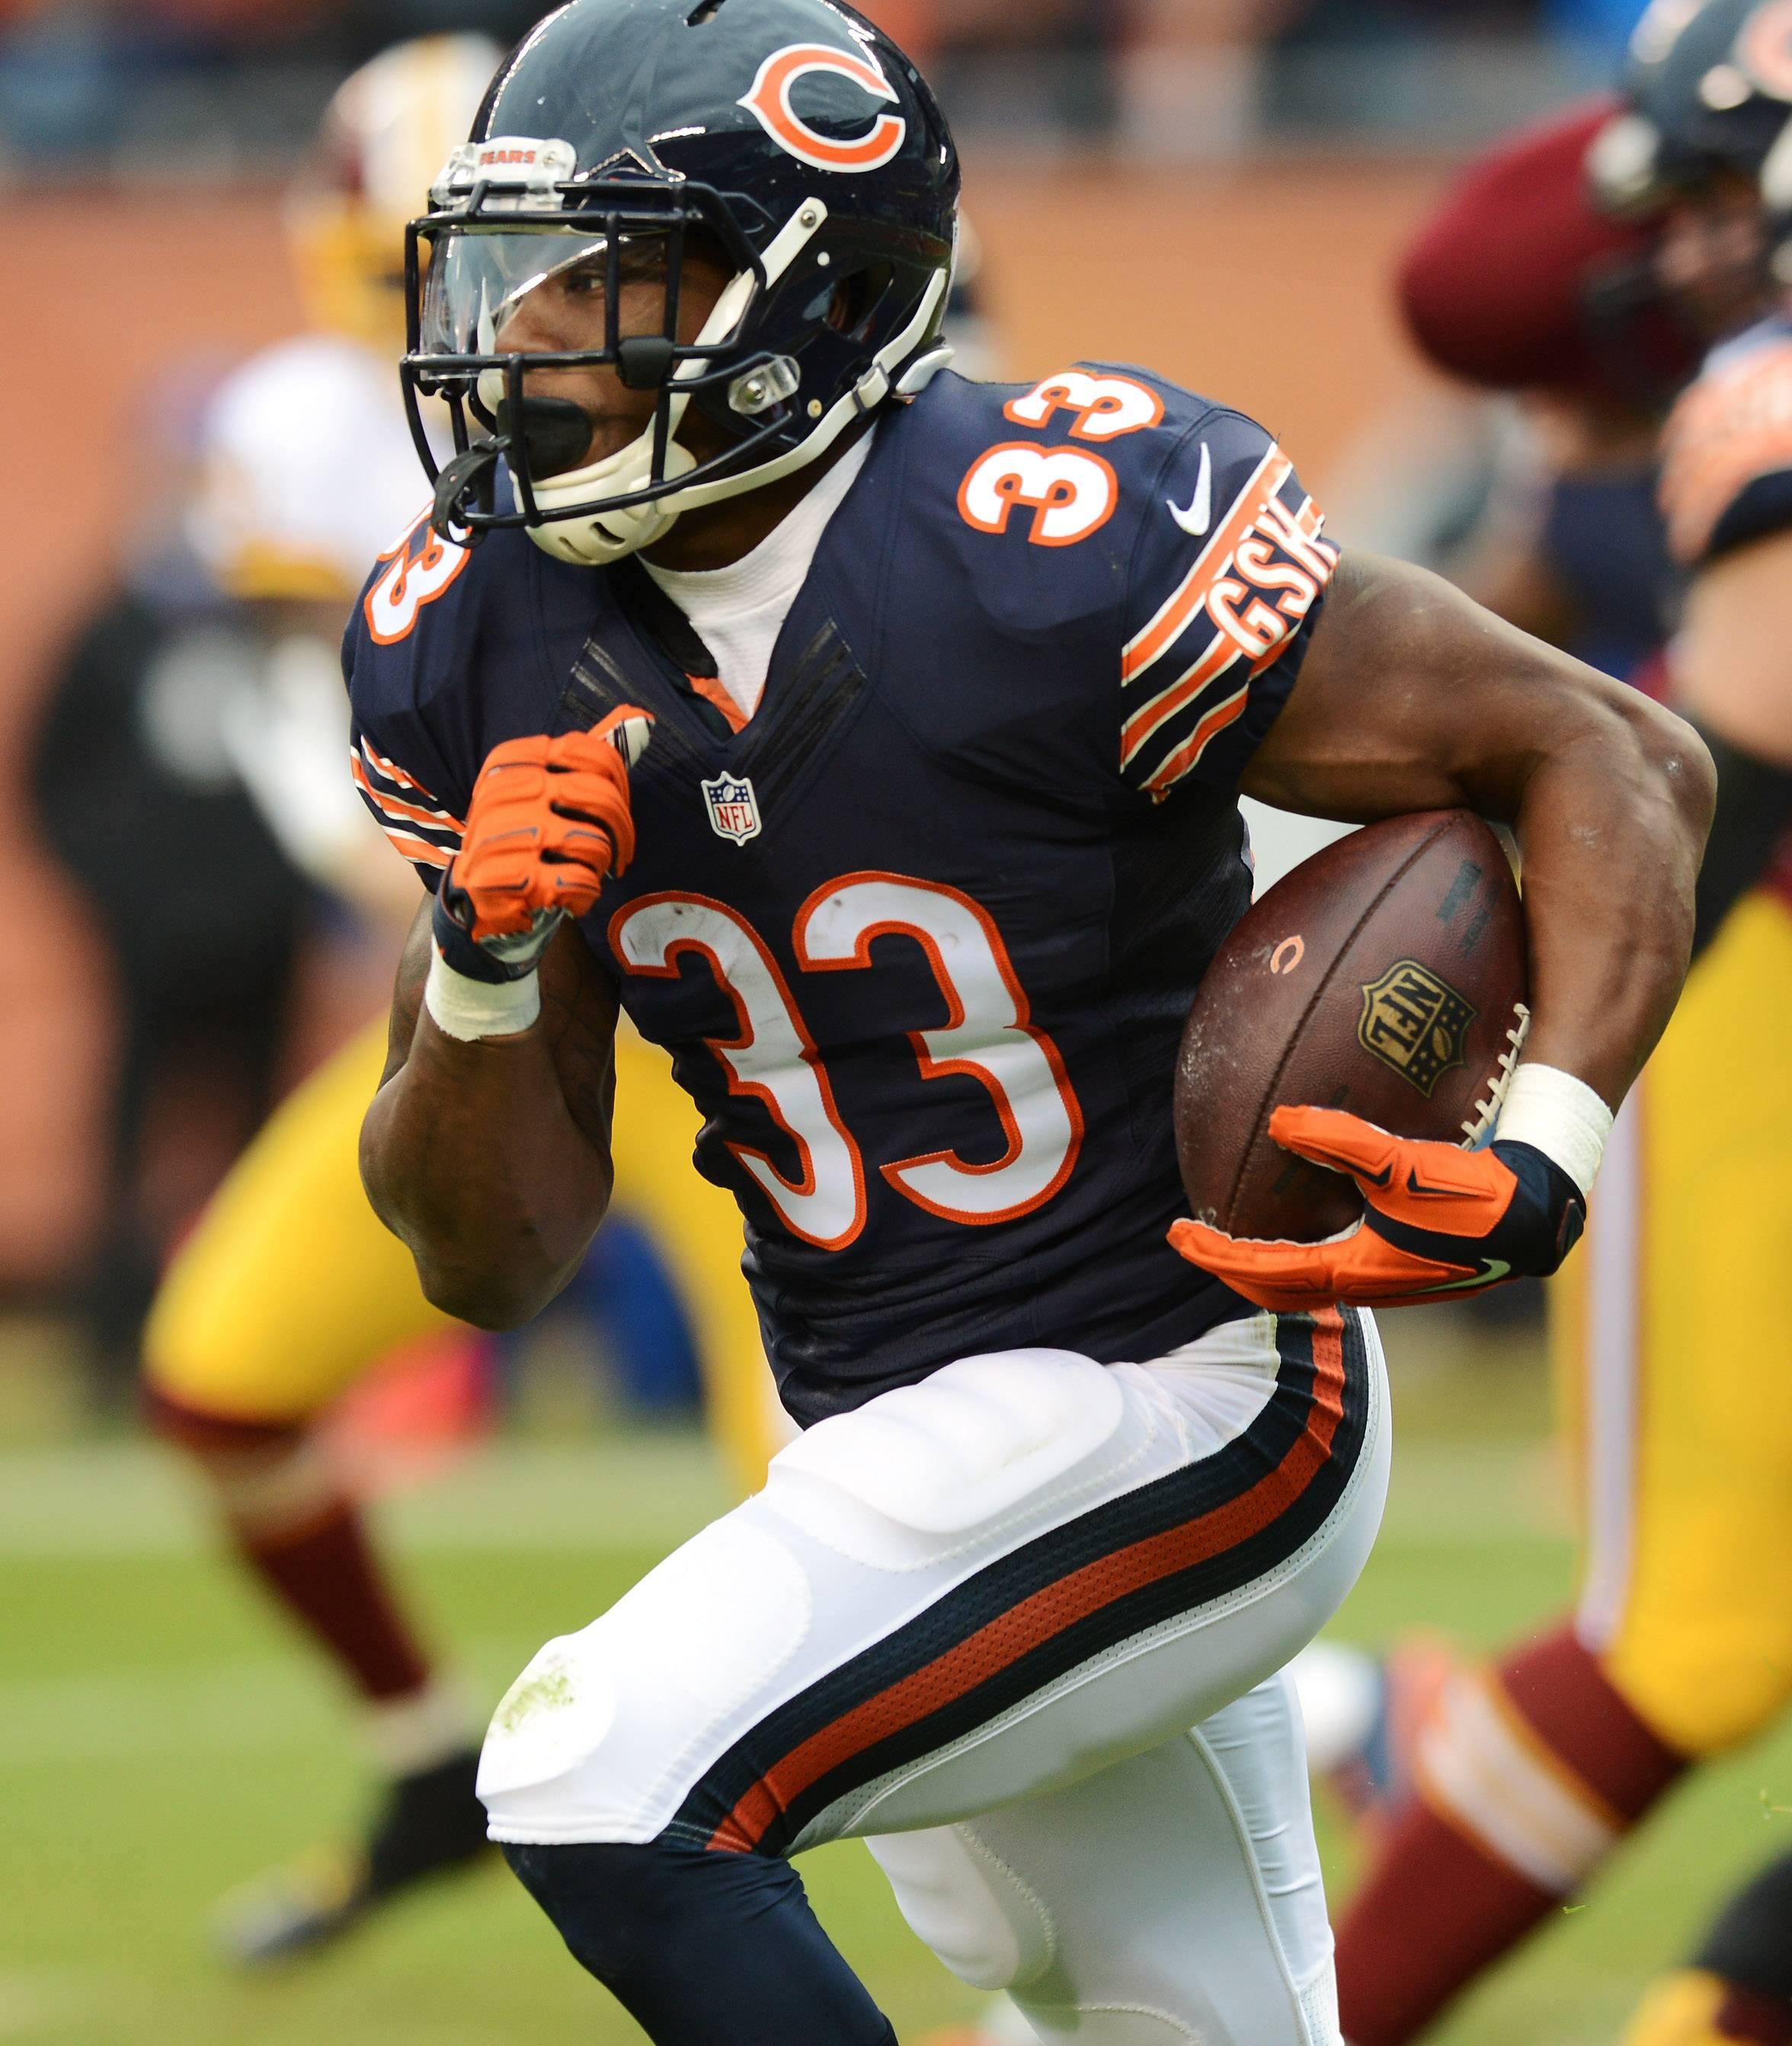 Jeremy Langford will open training camp as the No. 1 running back, but the Bears have several contenders available to help carry the load left behind by Matt Forte.